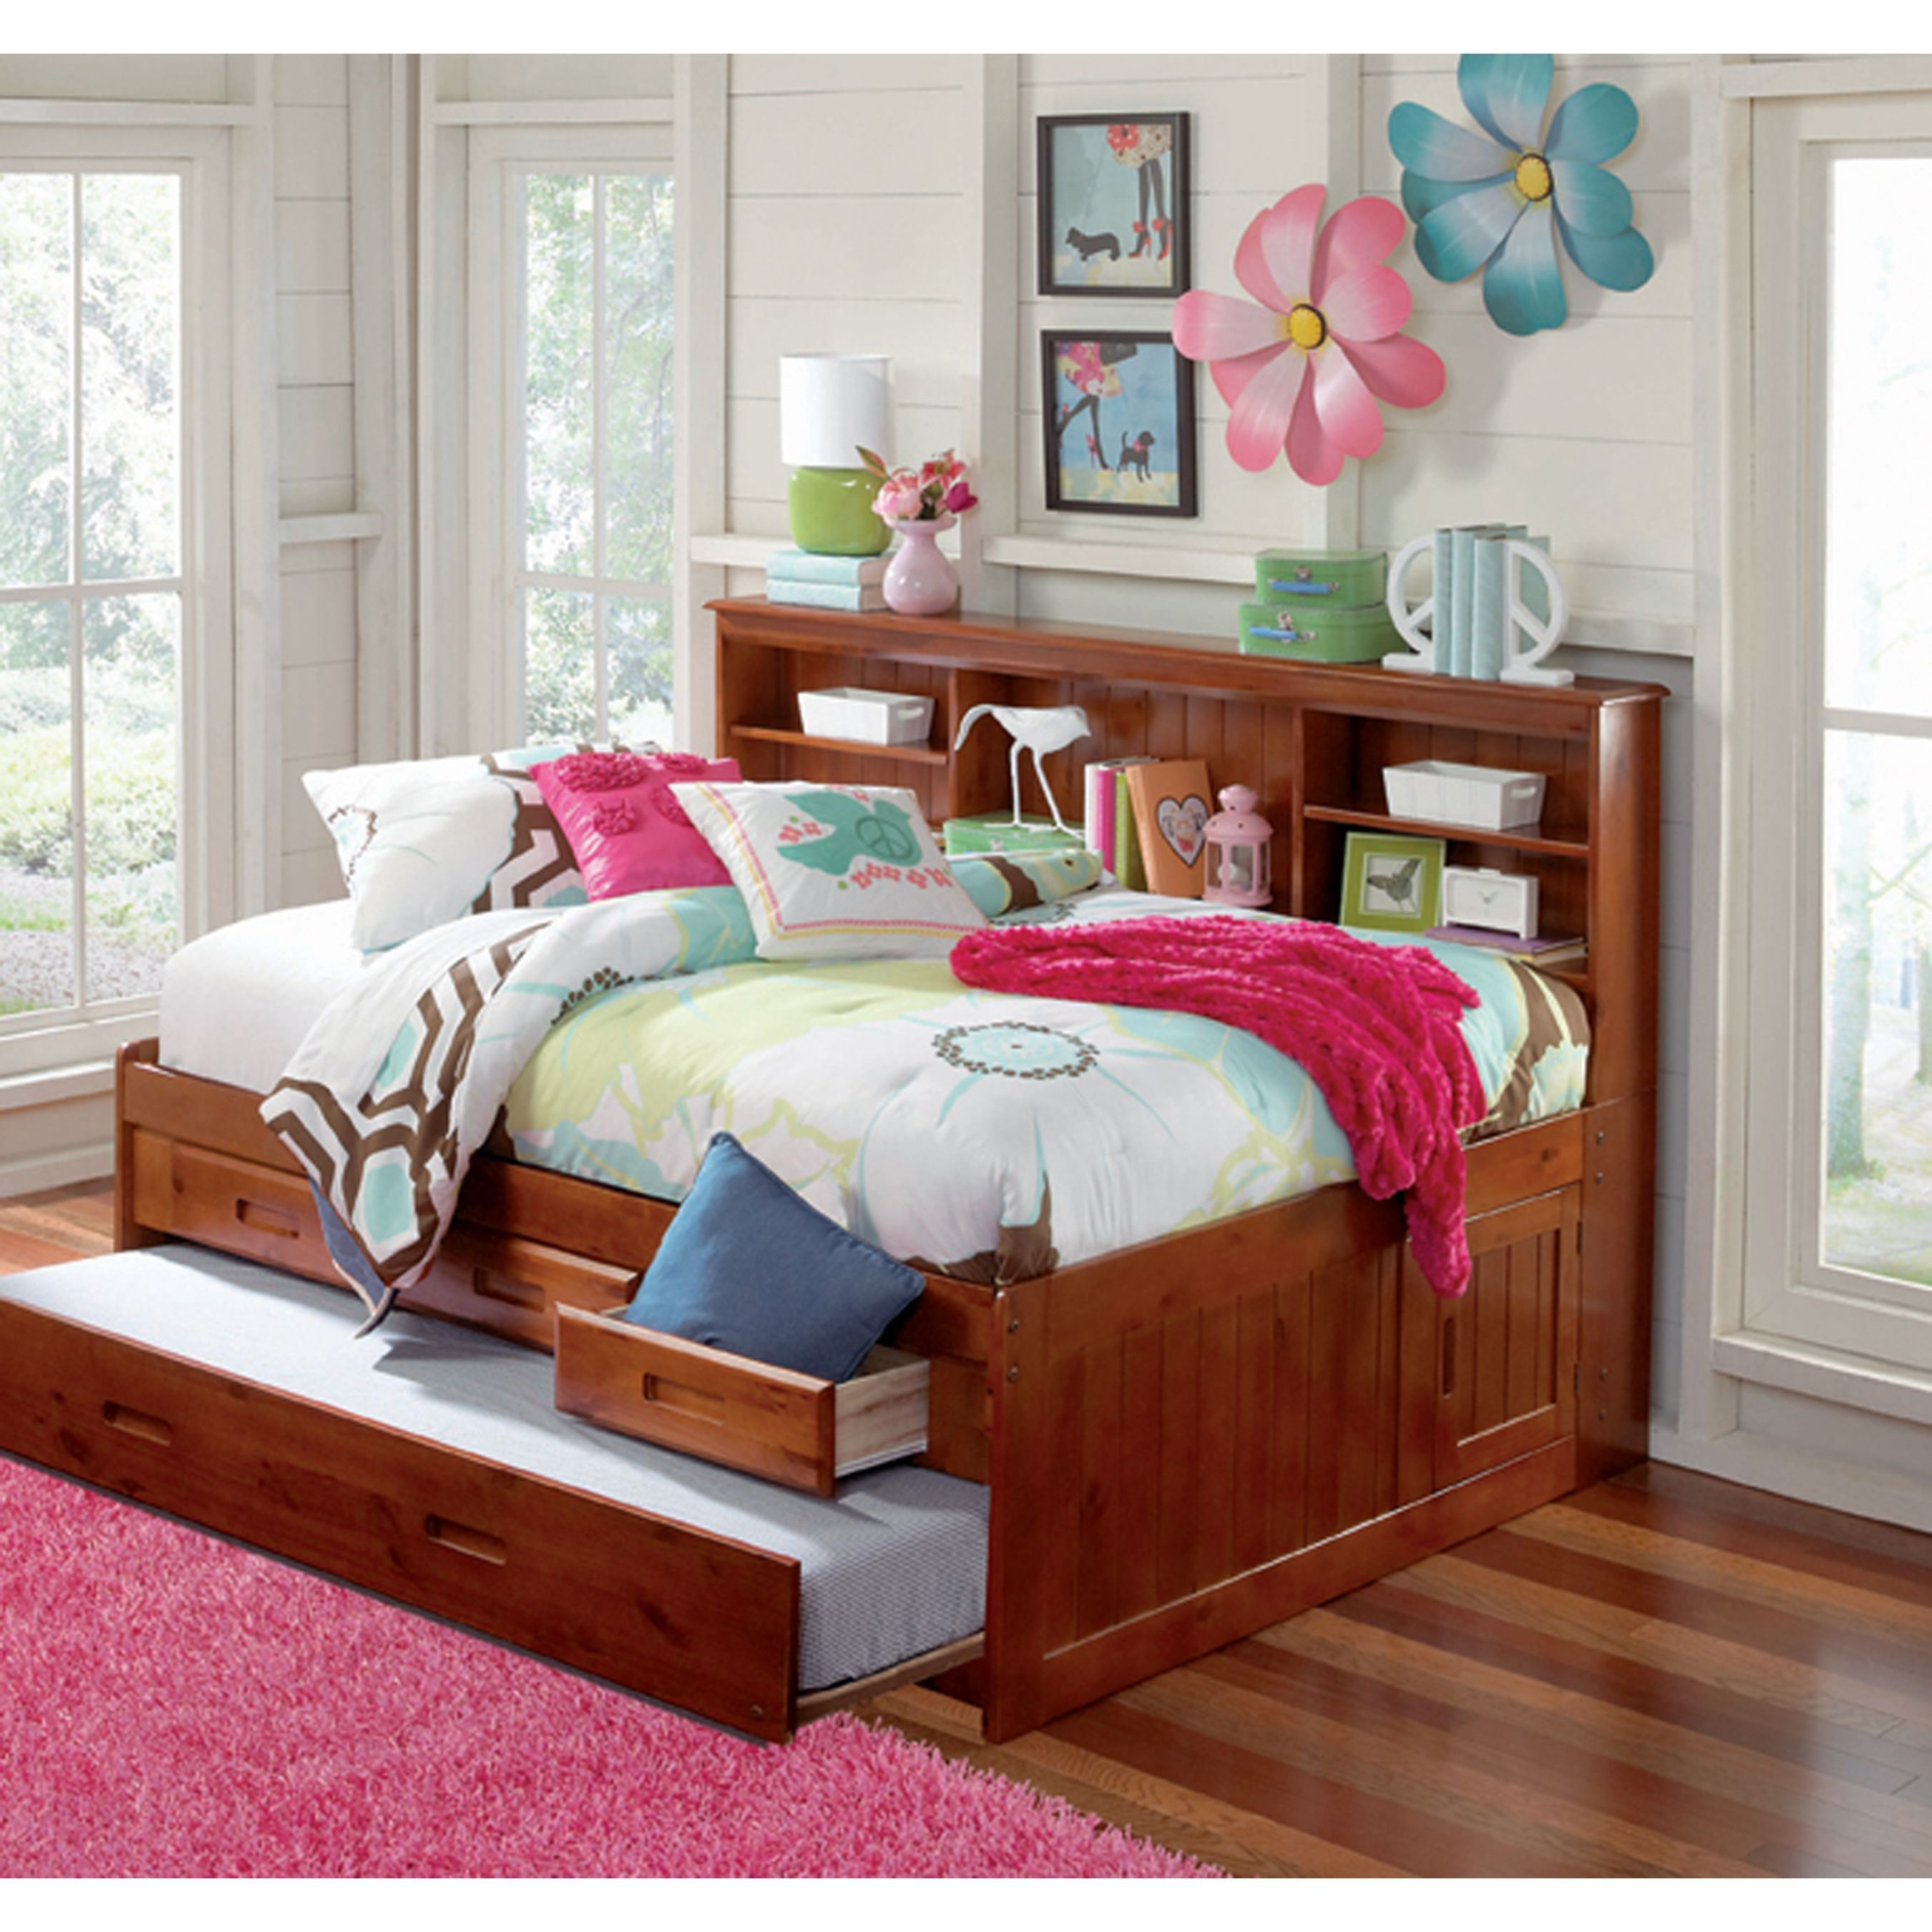 interior beautifull bedroom home with storage designer tenagee bedrooms drawers for modern bed girls girl design